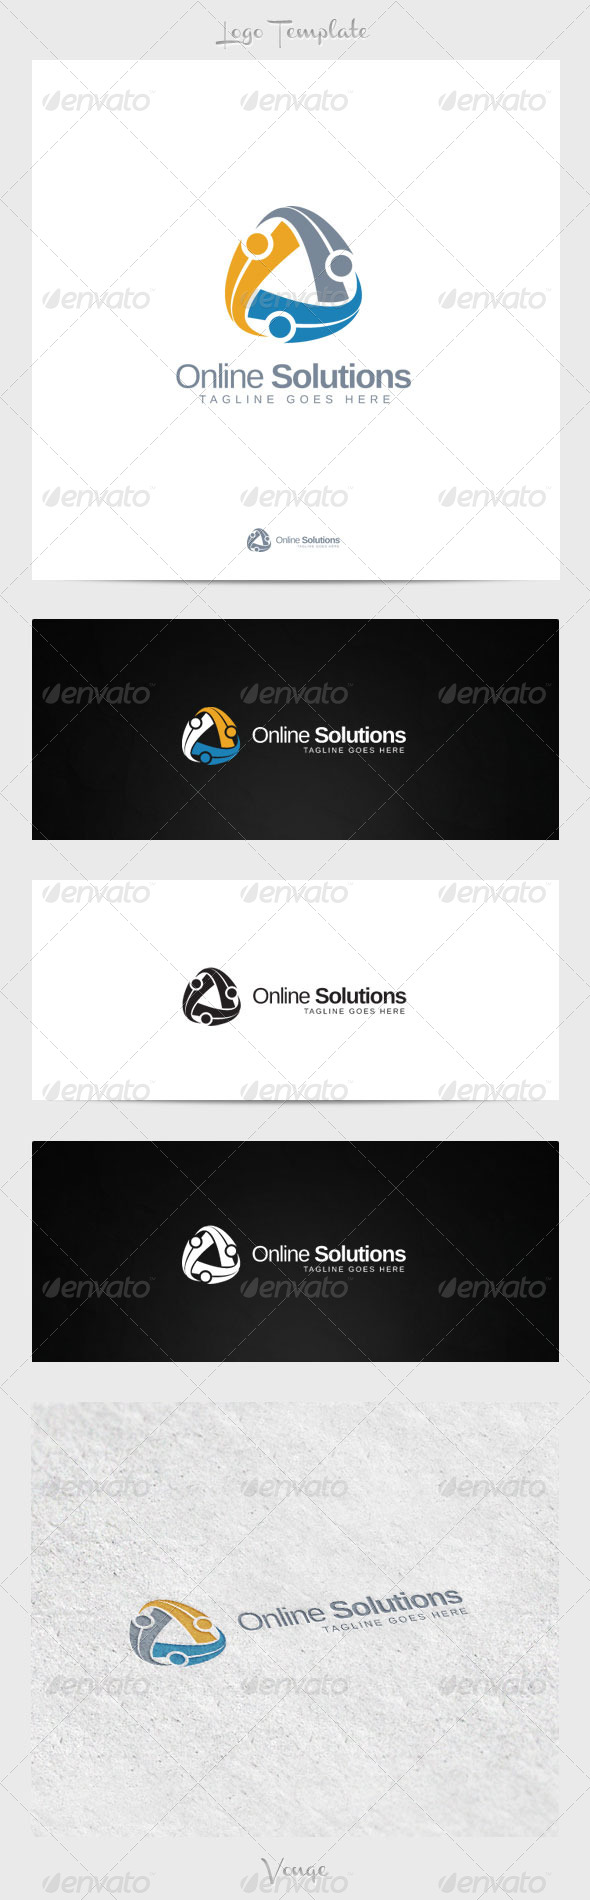 GraphicRiver Online Solutions 4223021